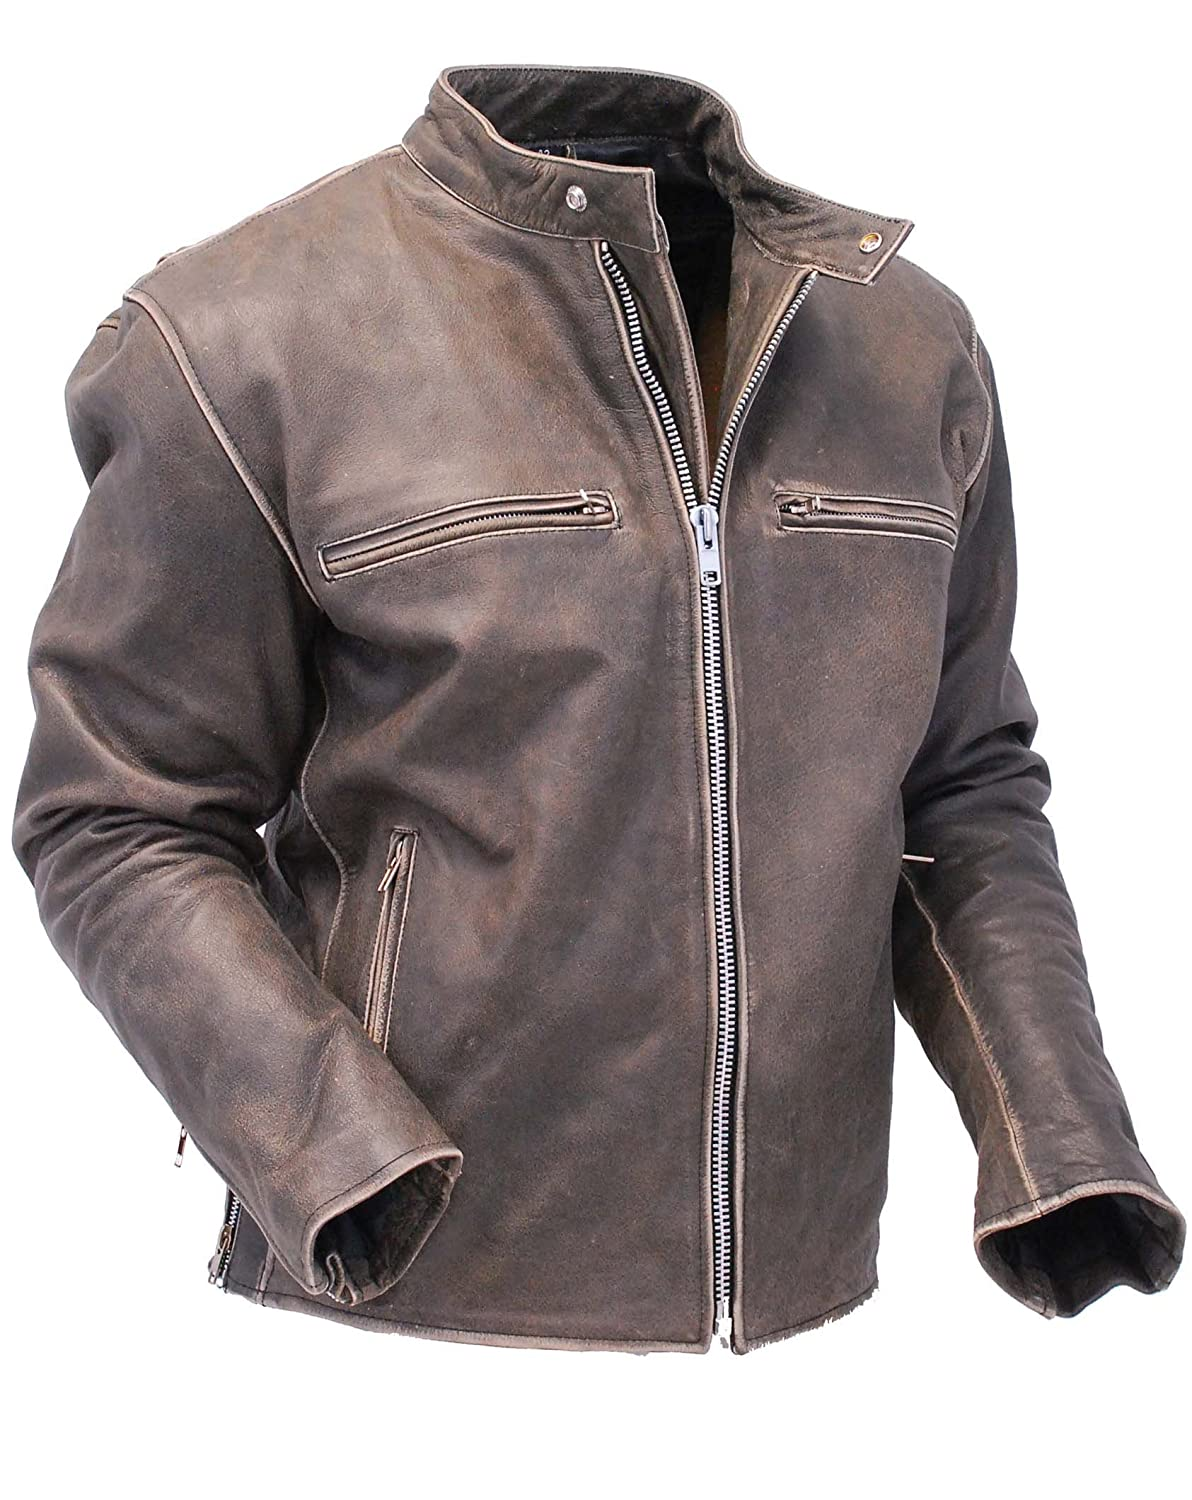 Jamin' Leather Vintage Brown Rebel Rider Leather Motorcycle Jacket ...